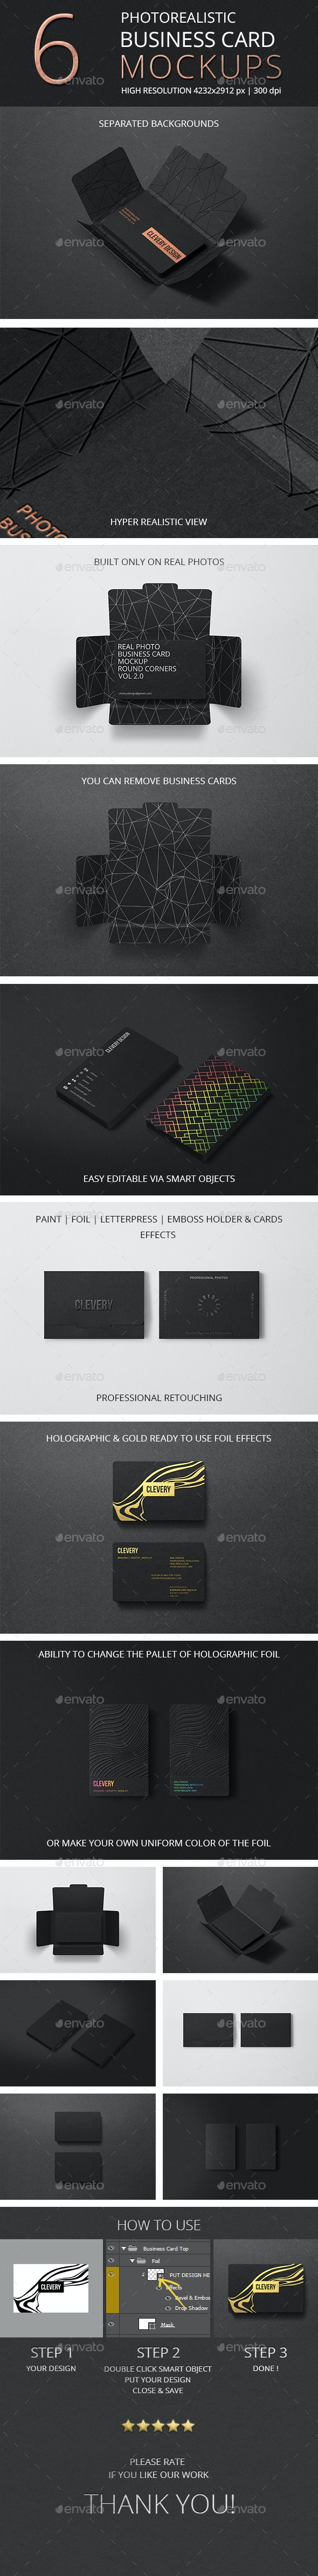 Photorealistic Business Card Mockup Round Corners Vol 2.0 - Business Cards Print